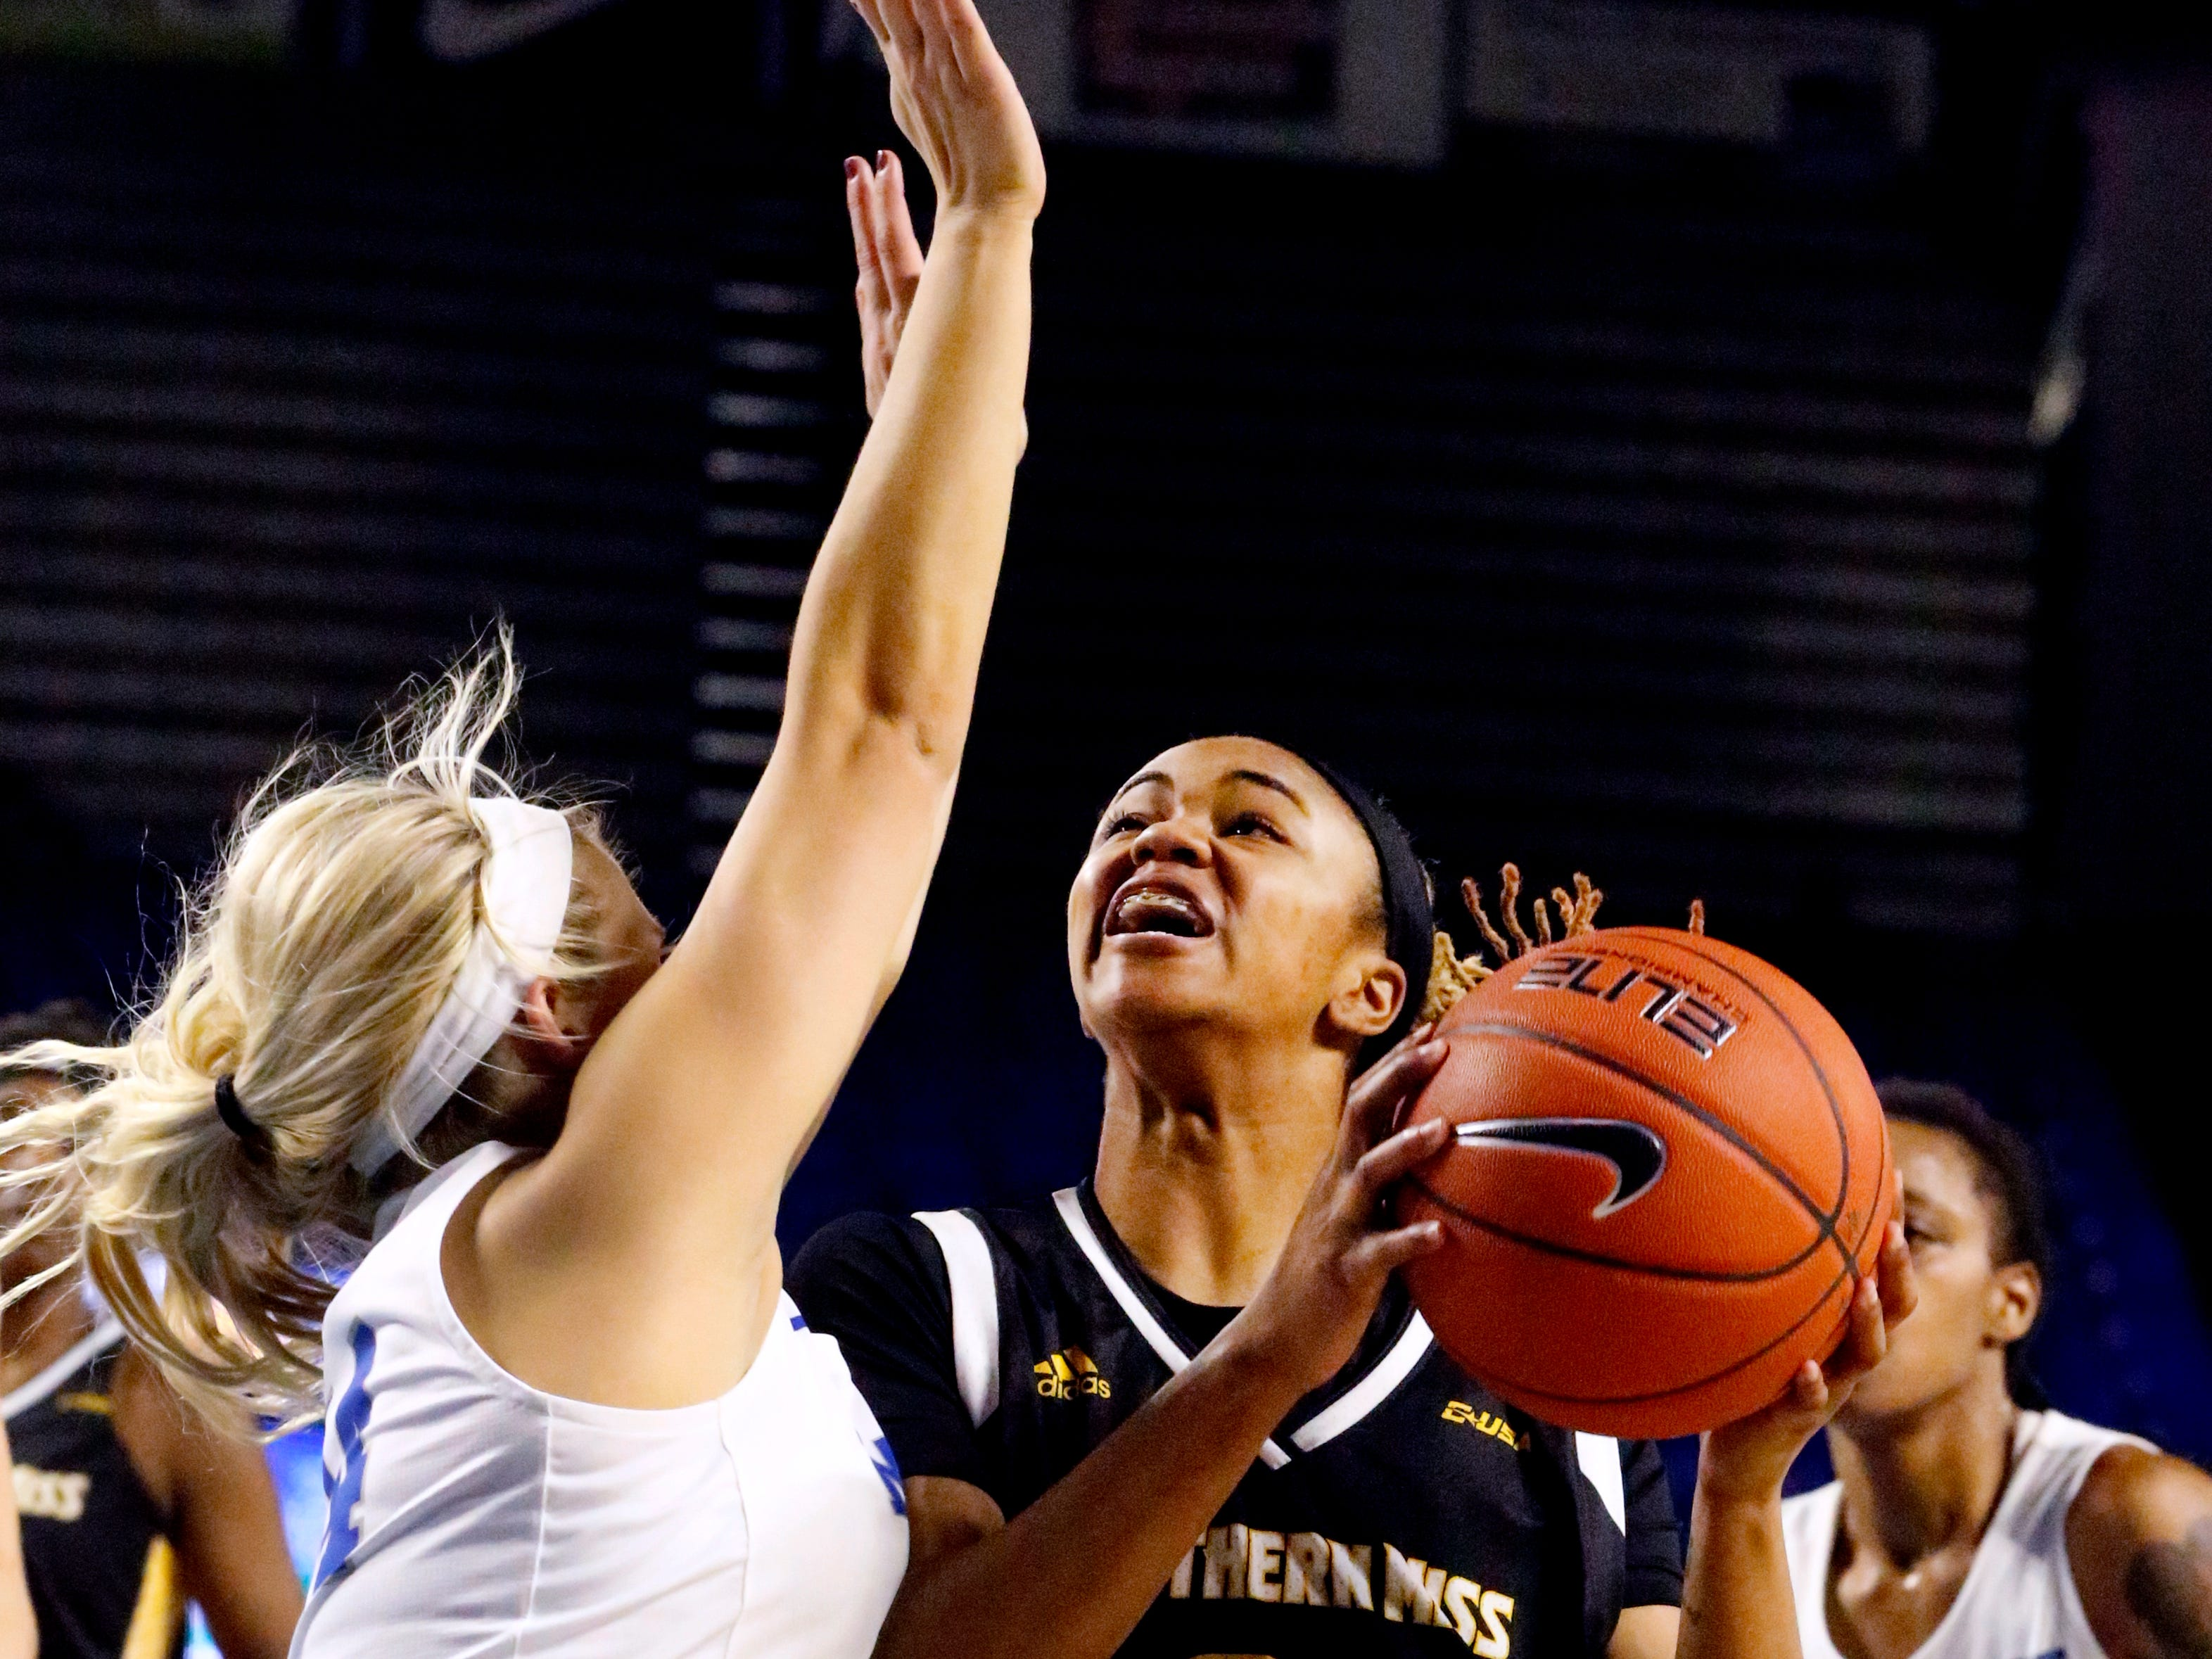 Southern Miss' Daishai Almond (21) goes for a shot as MTSU's guard Katie Collier (14) guards her, on Thursday Jan. 10, 2019.